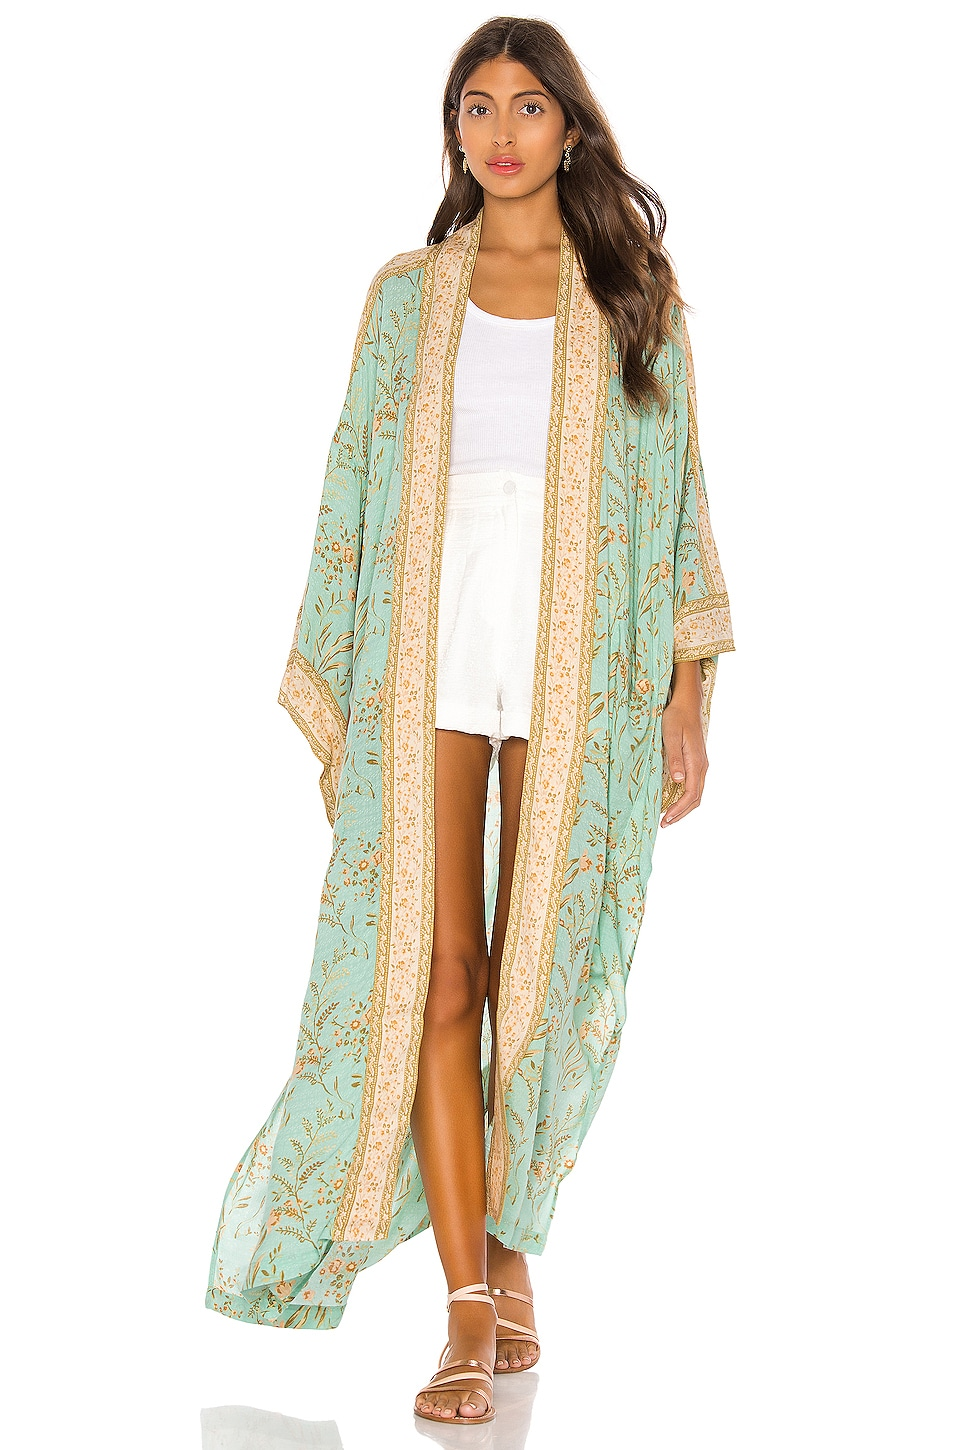 Spell & The Gypsy Collective Maisie Maxi Kimono in Vintage Turquoise